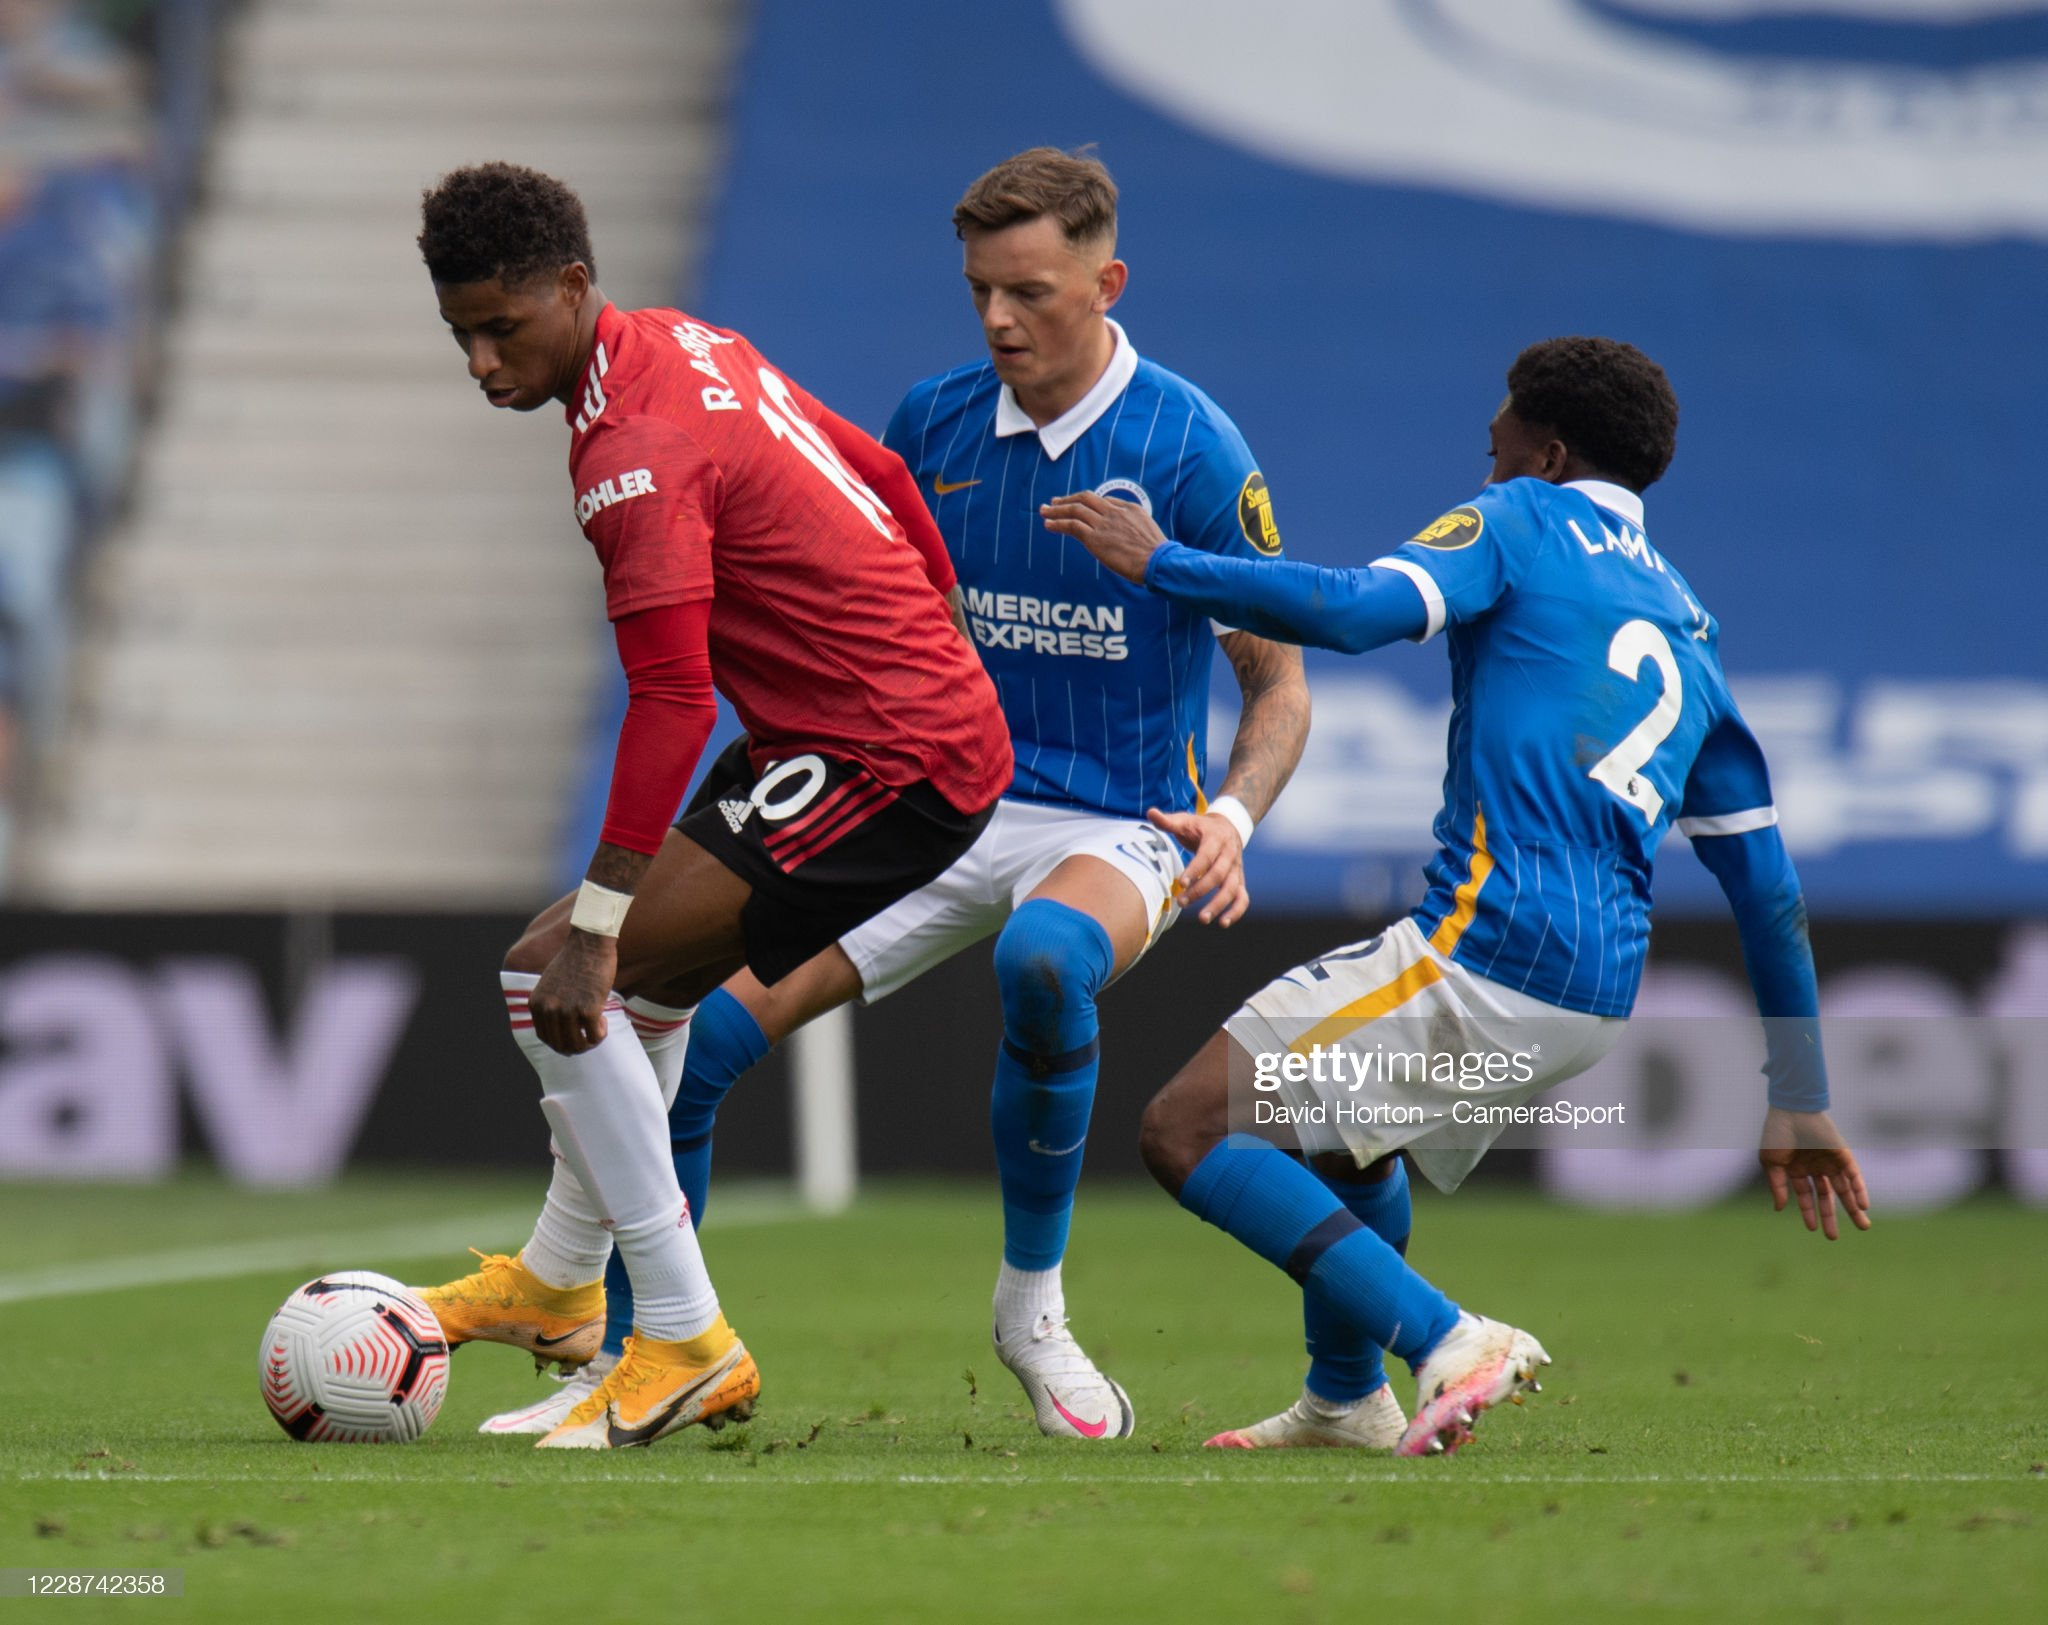 Manchester United vs Brighton preview, prediction and odds